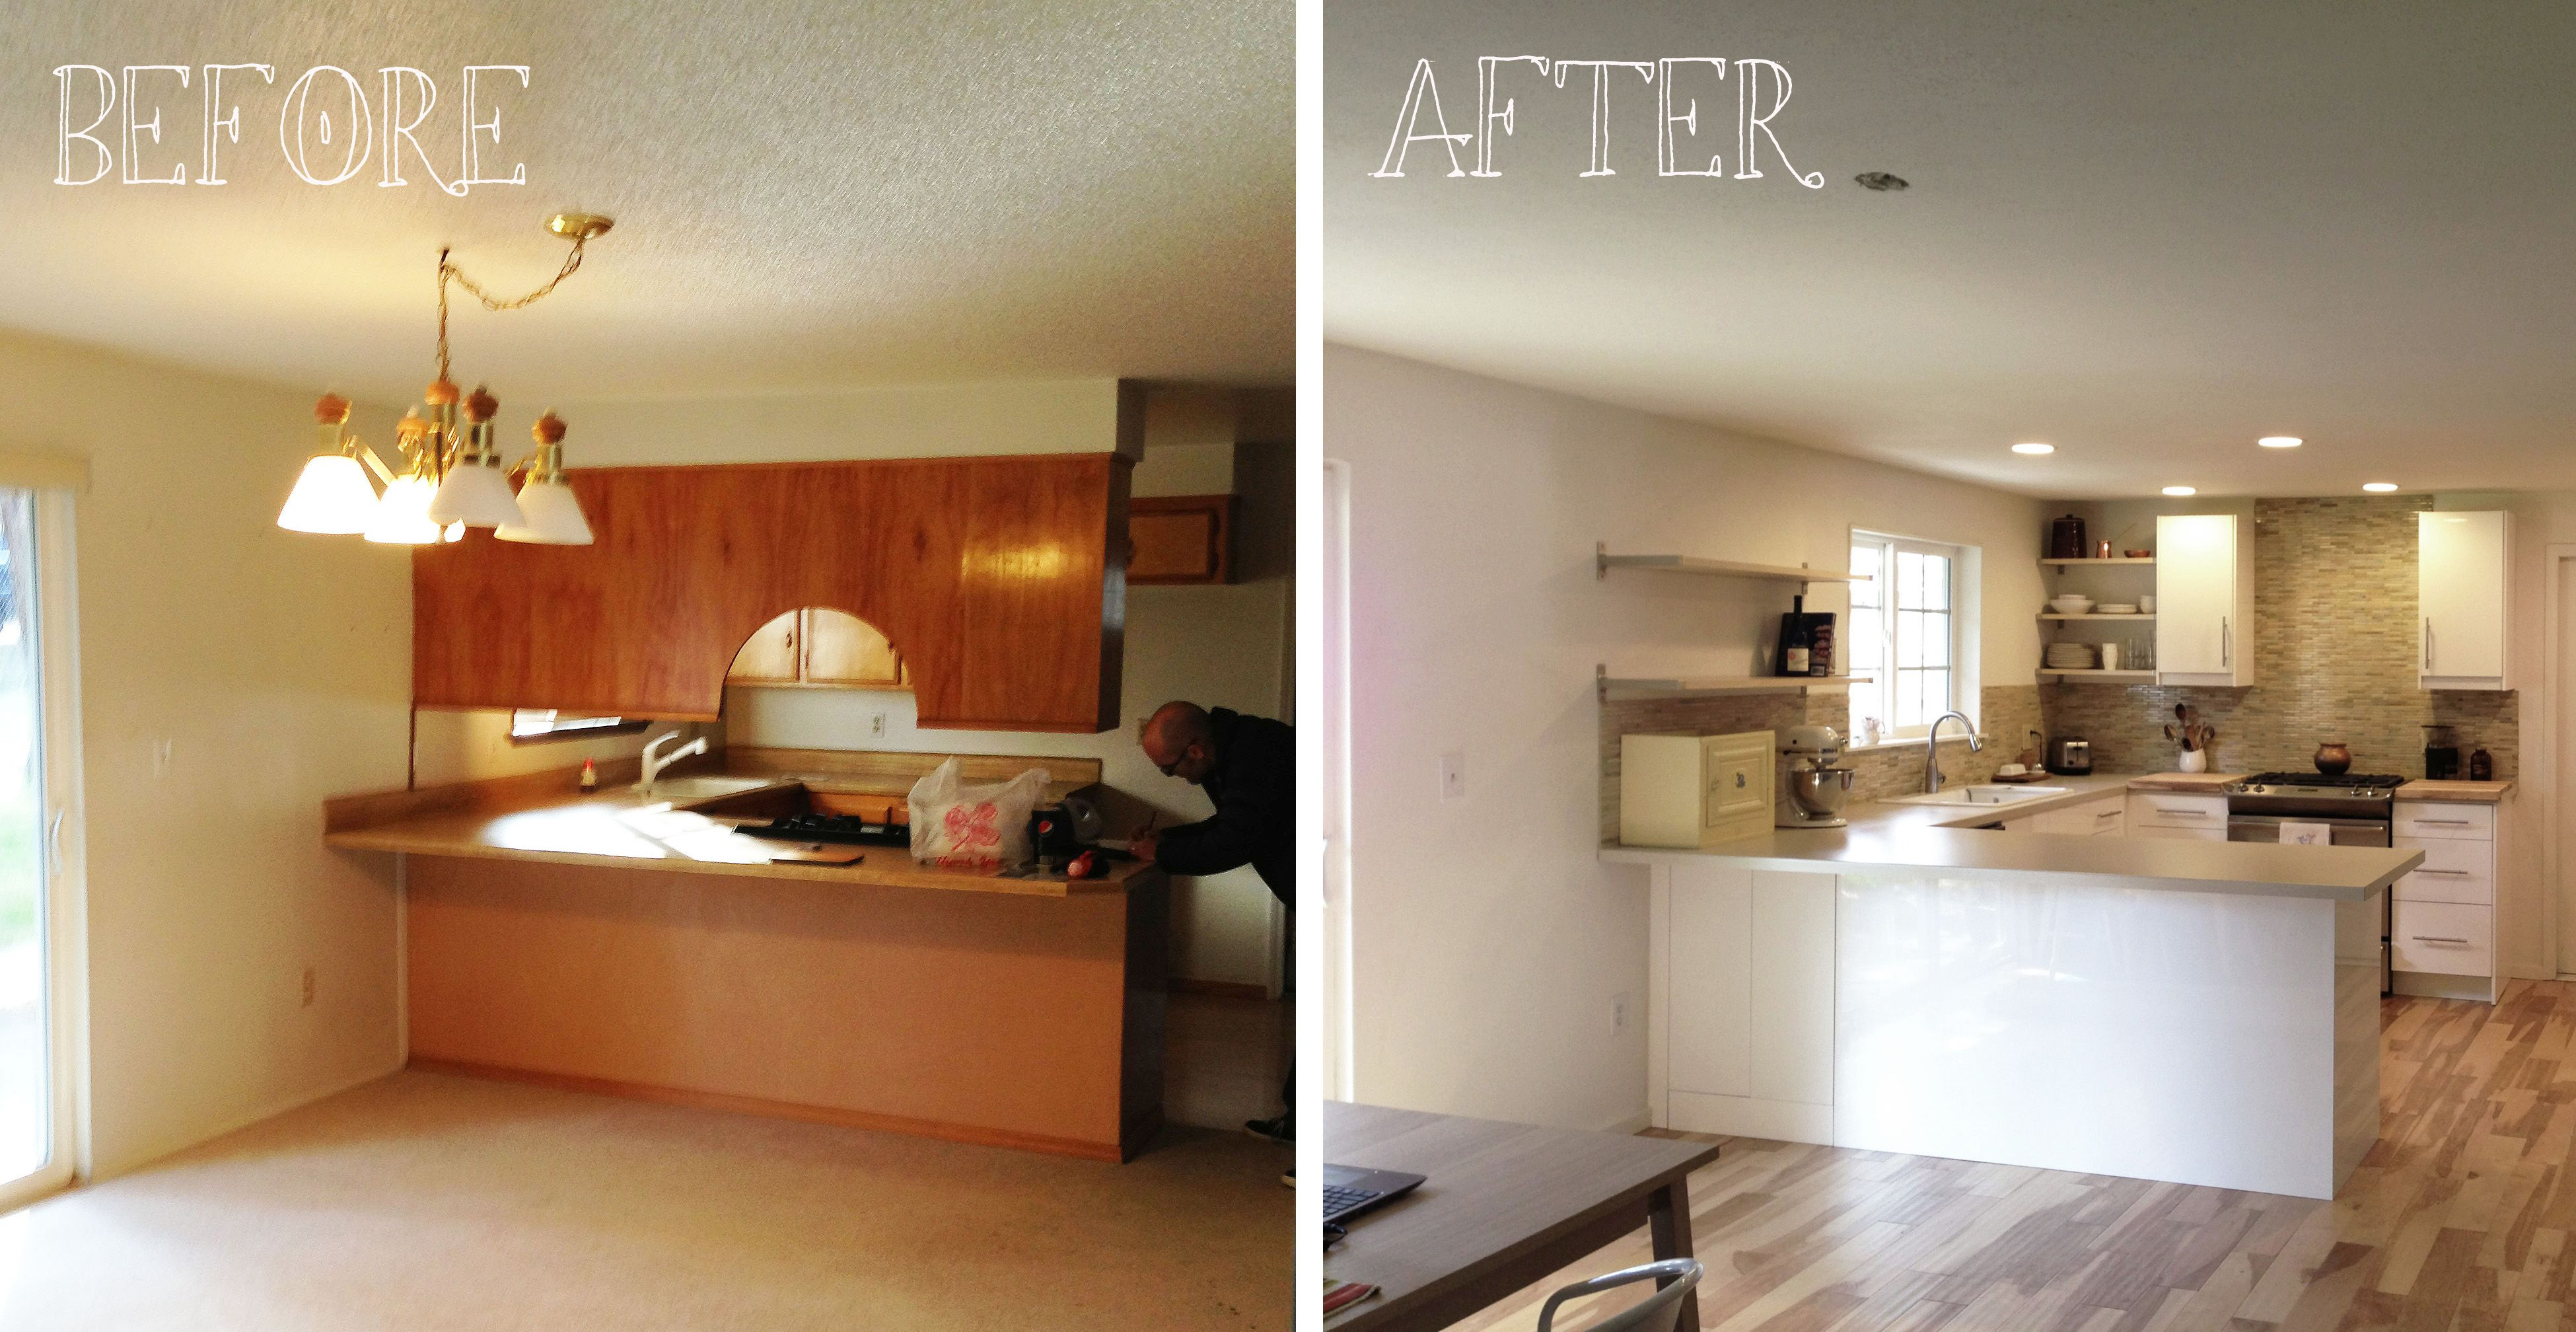 Remodel Pictures Before And After travel trailer remodel before and after remodel before after